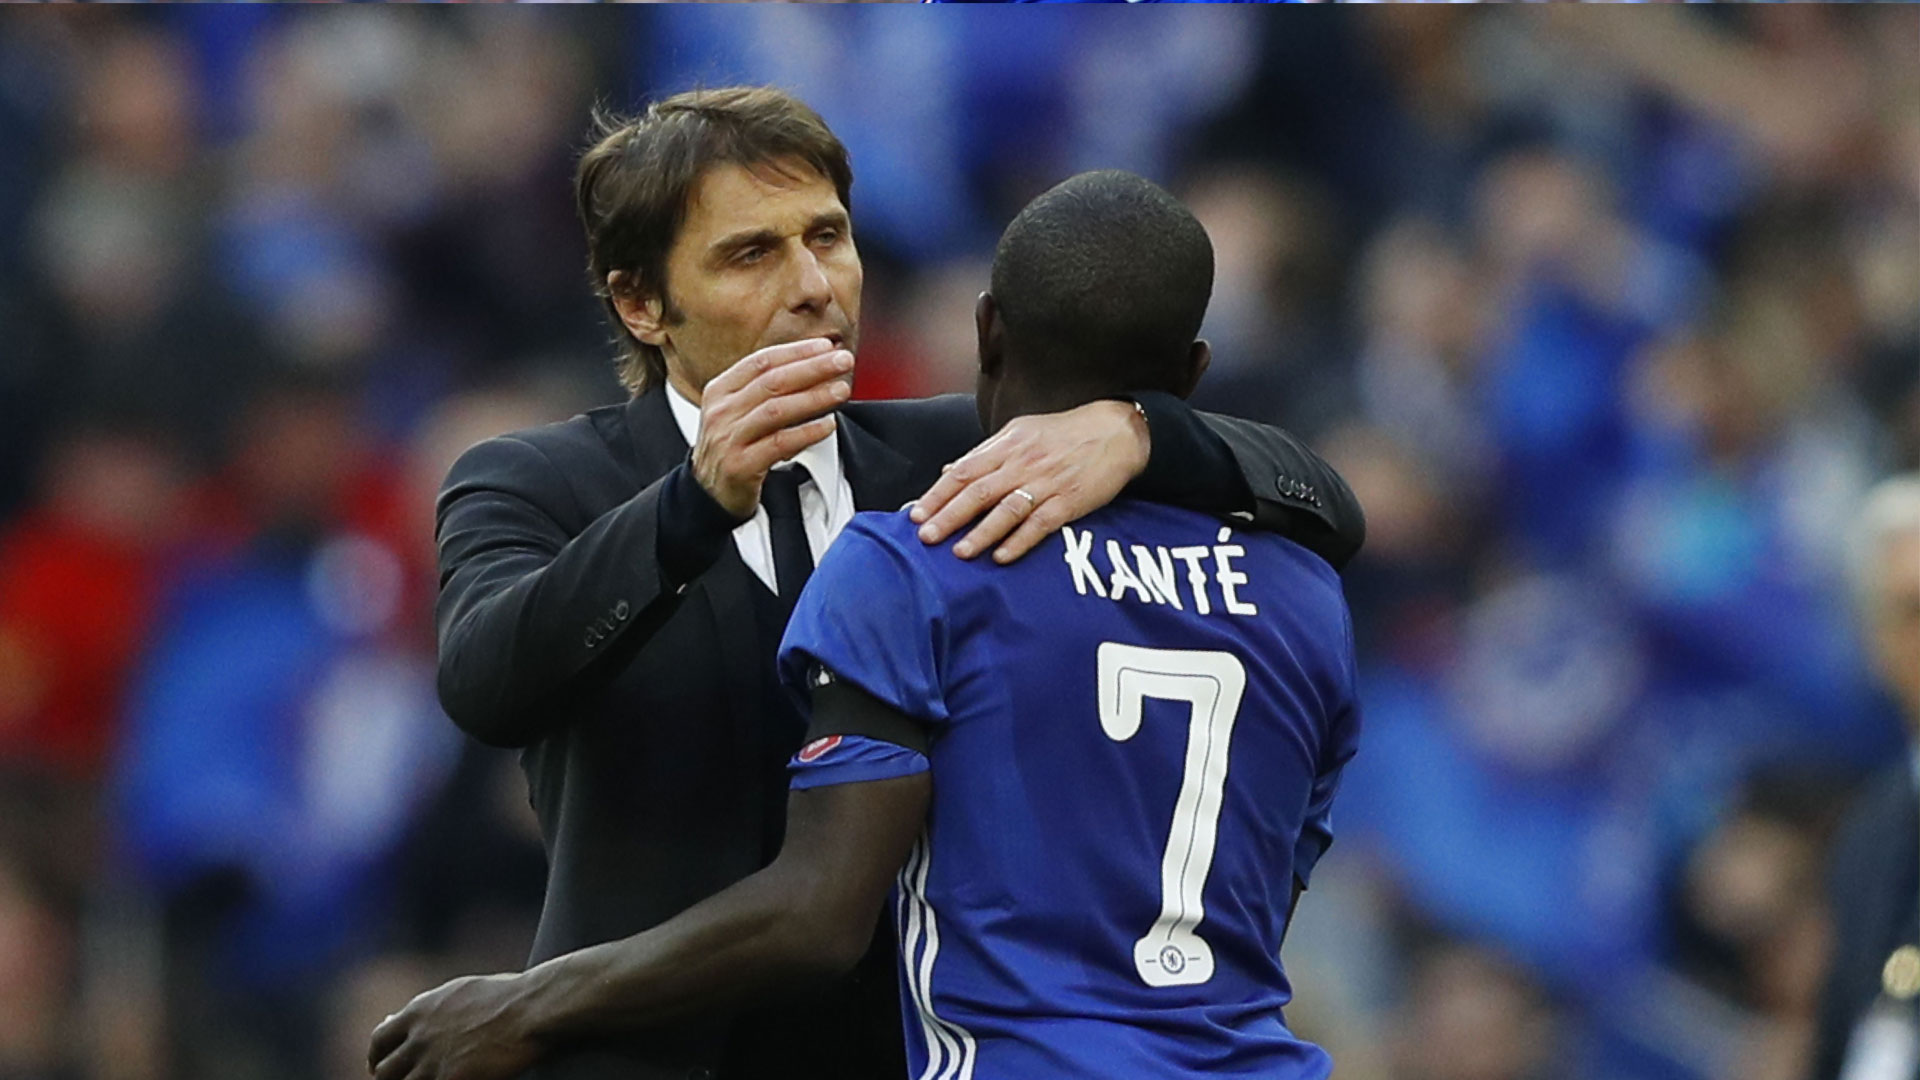 Conte: Kante is one of the best players I have had in my career as ...